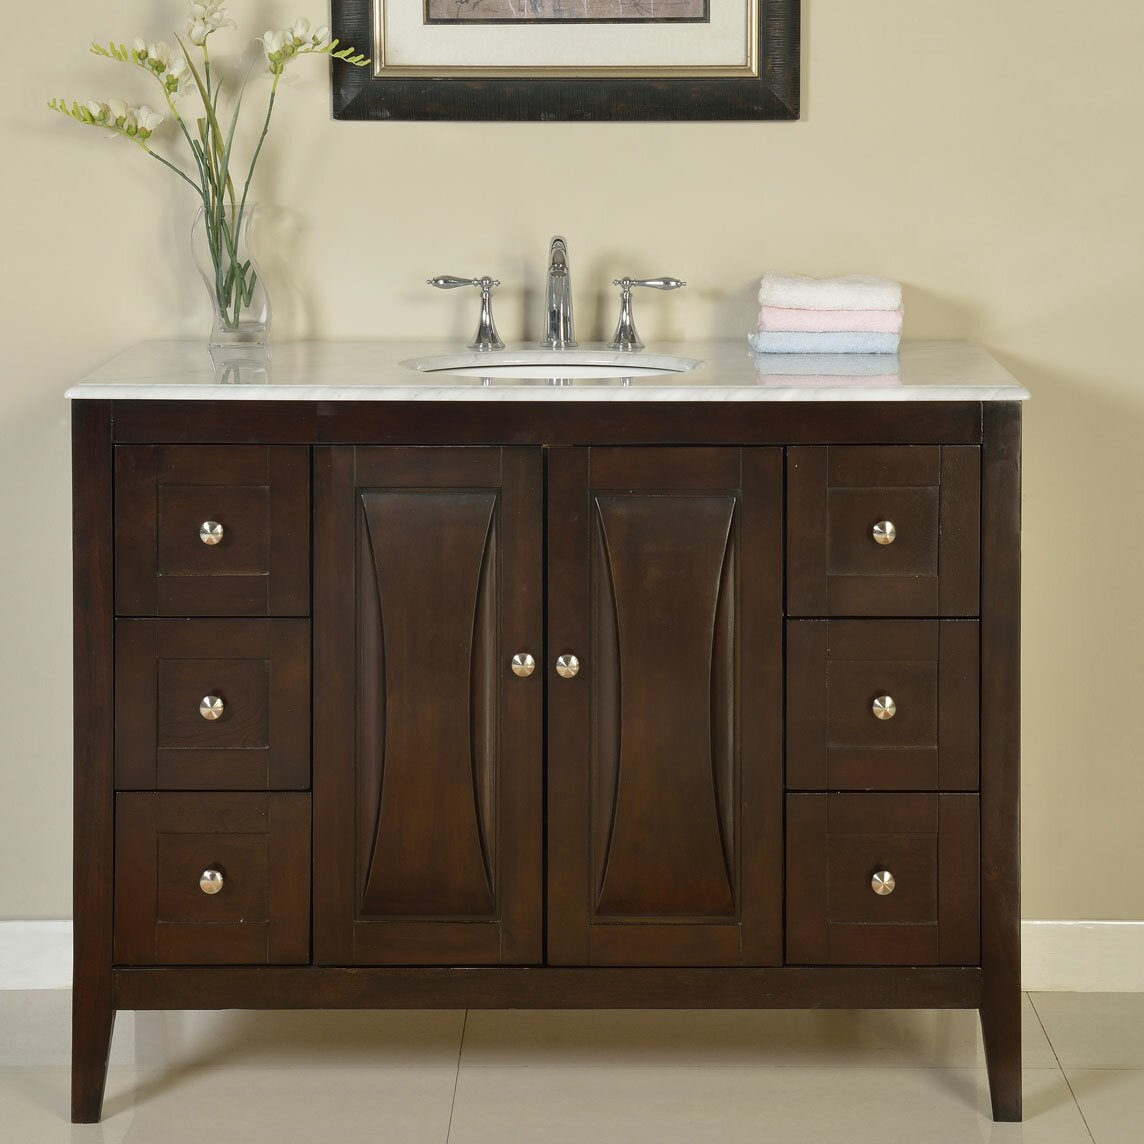 Silkroad exclusive 48 single sink cabinet bathroom vanity set reviews wayfair Bathroom sink and vanity sets